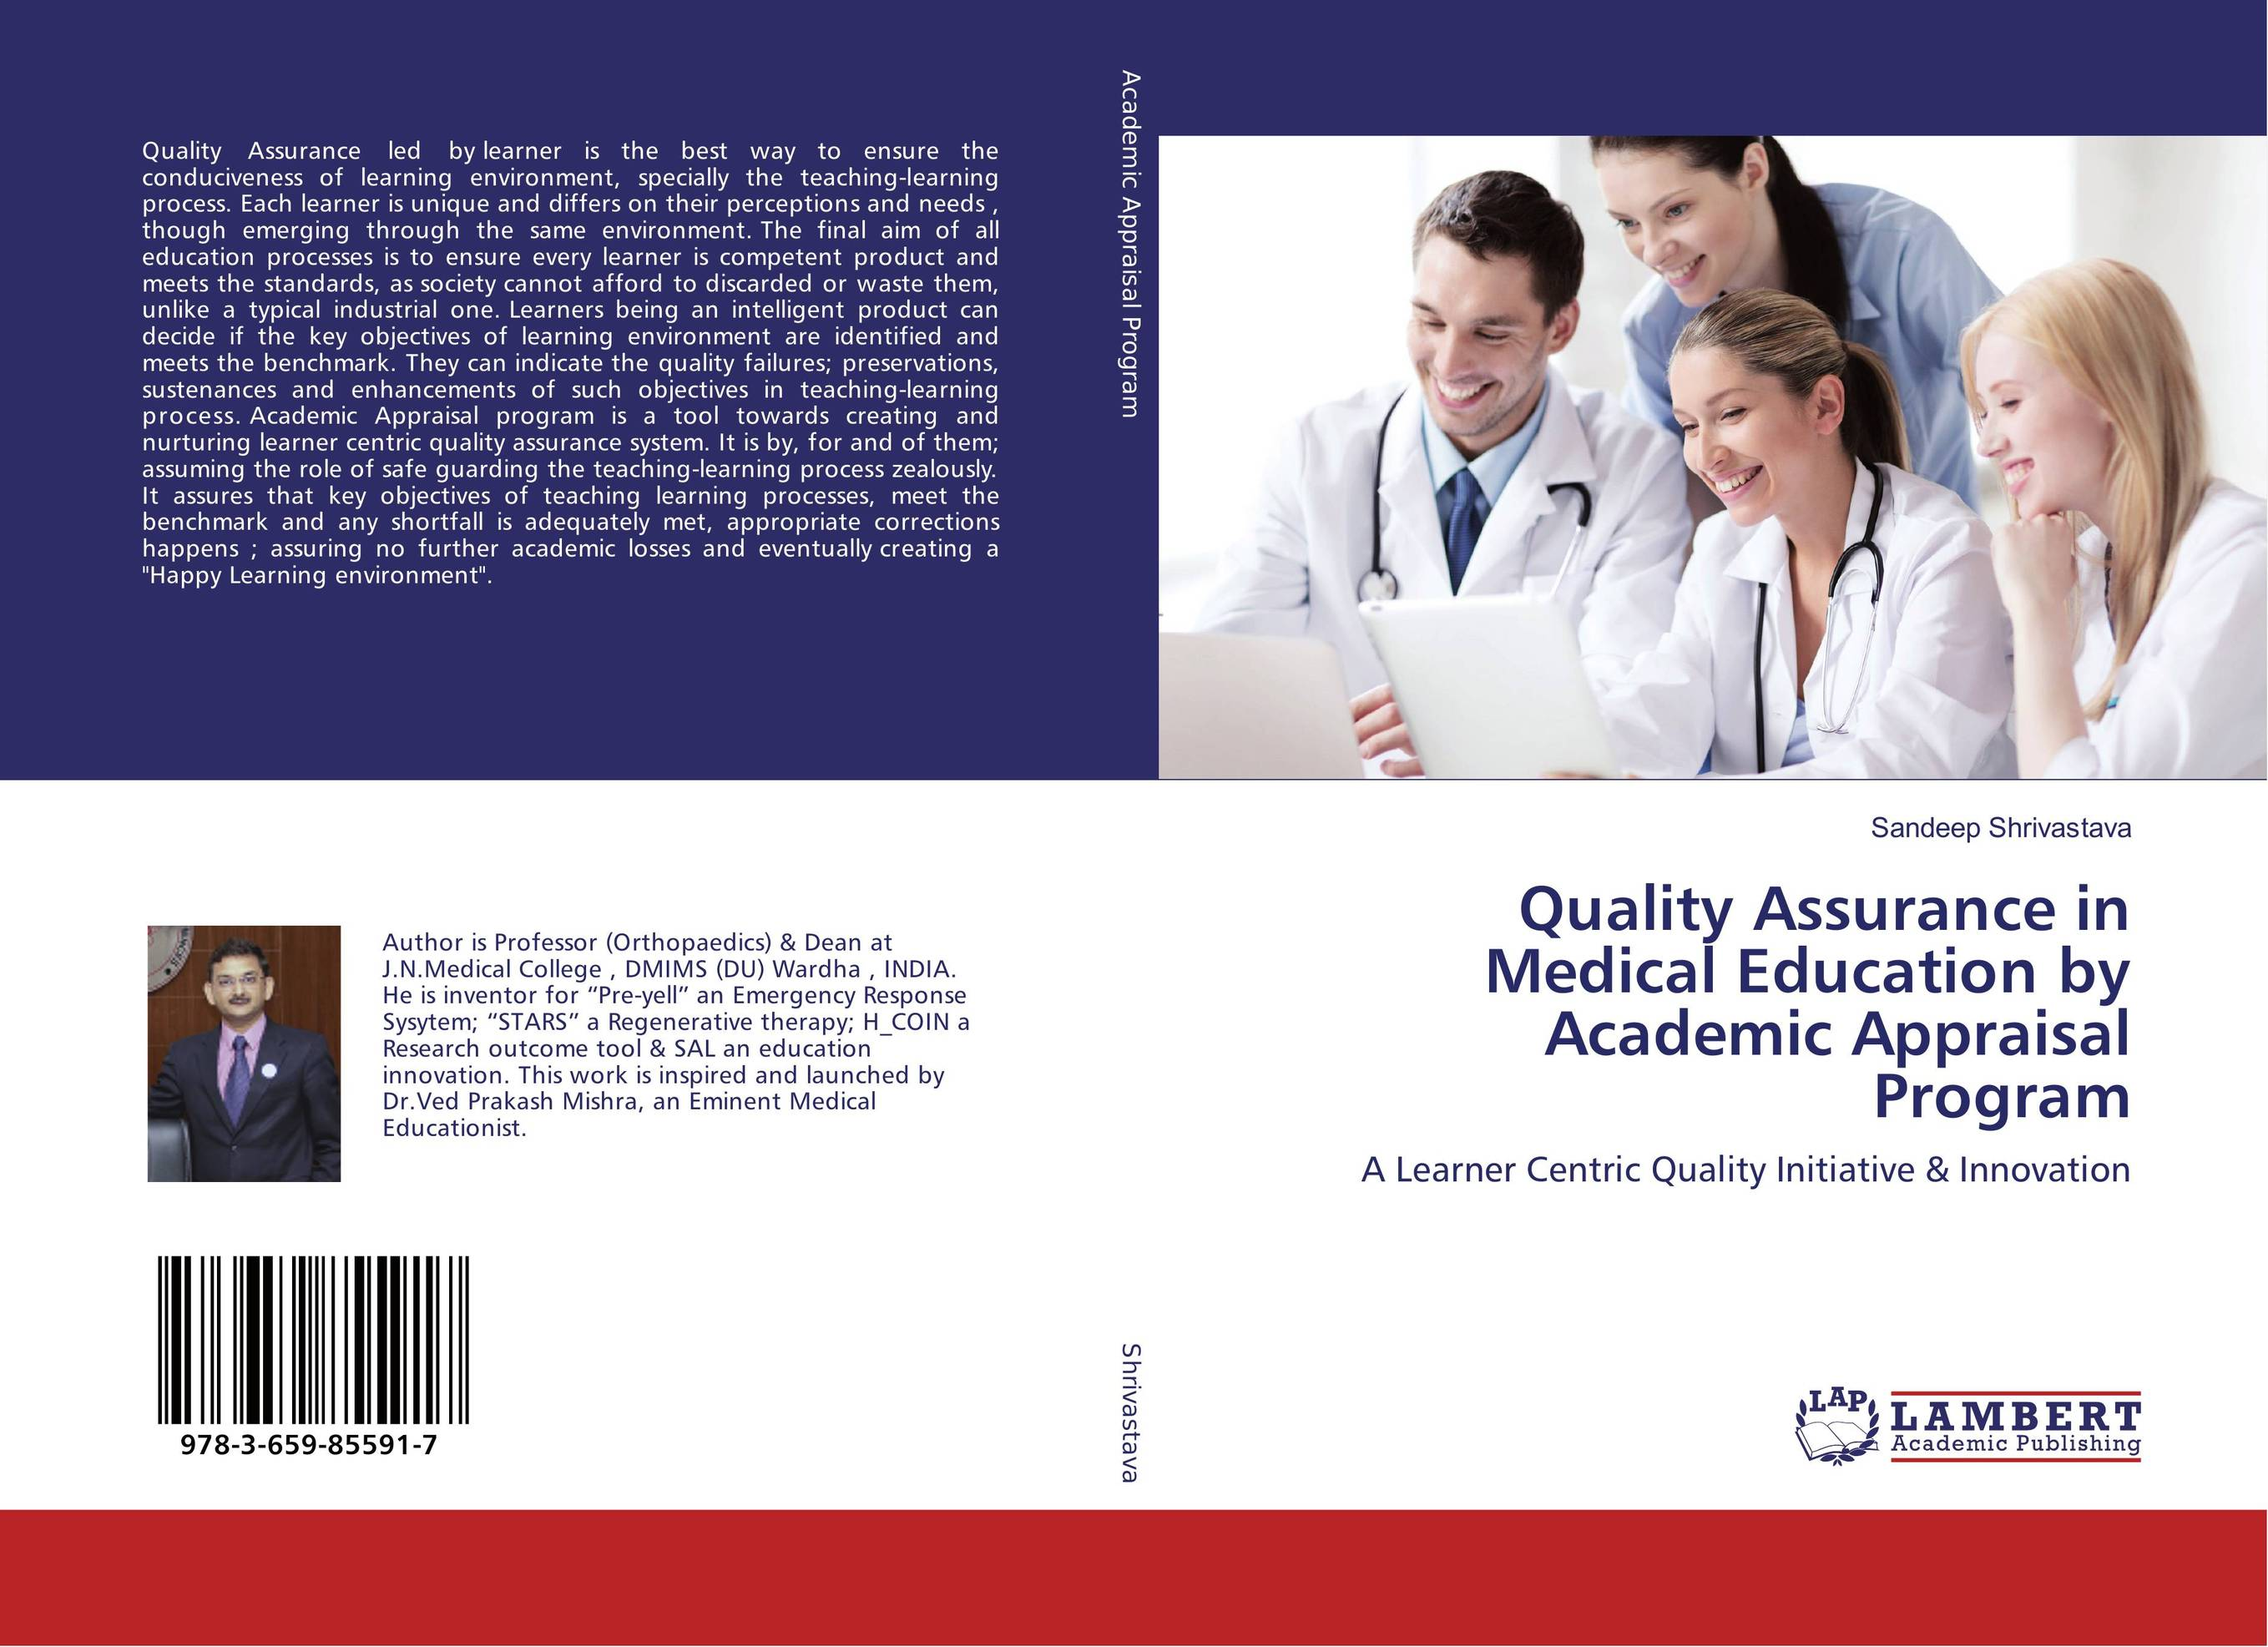 Quality Assurance in Medical Education by Academic Appraisal Program the quality of ict supported learning and teaching environments